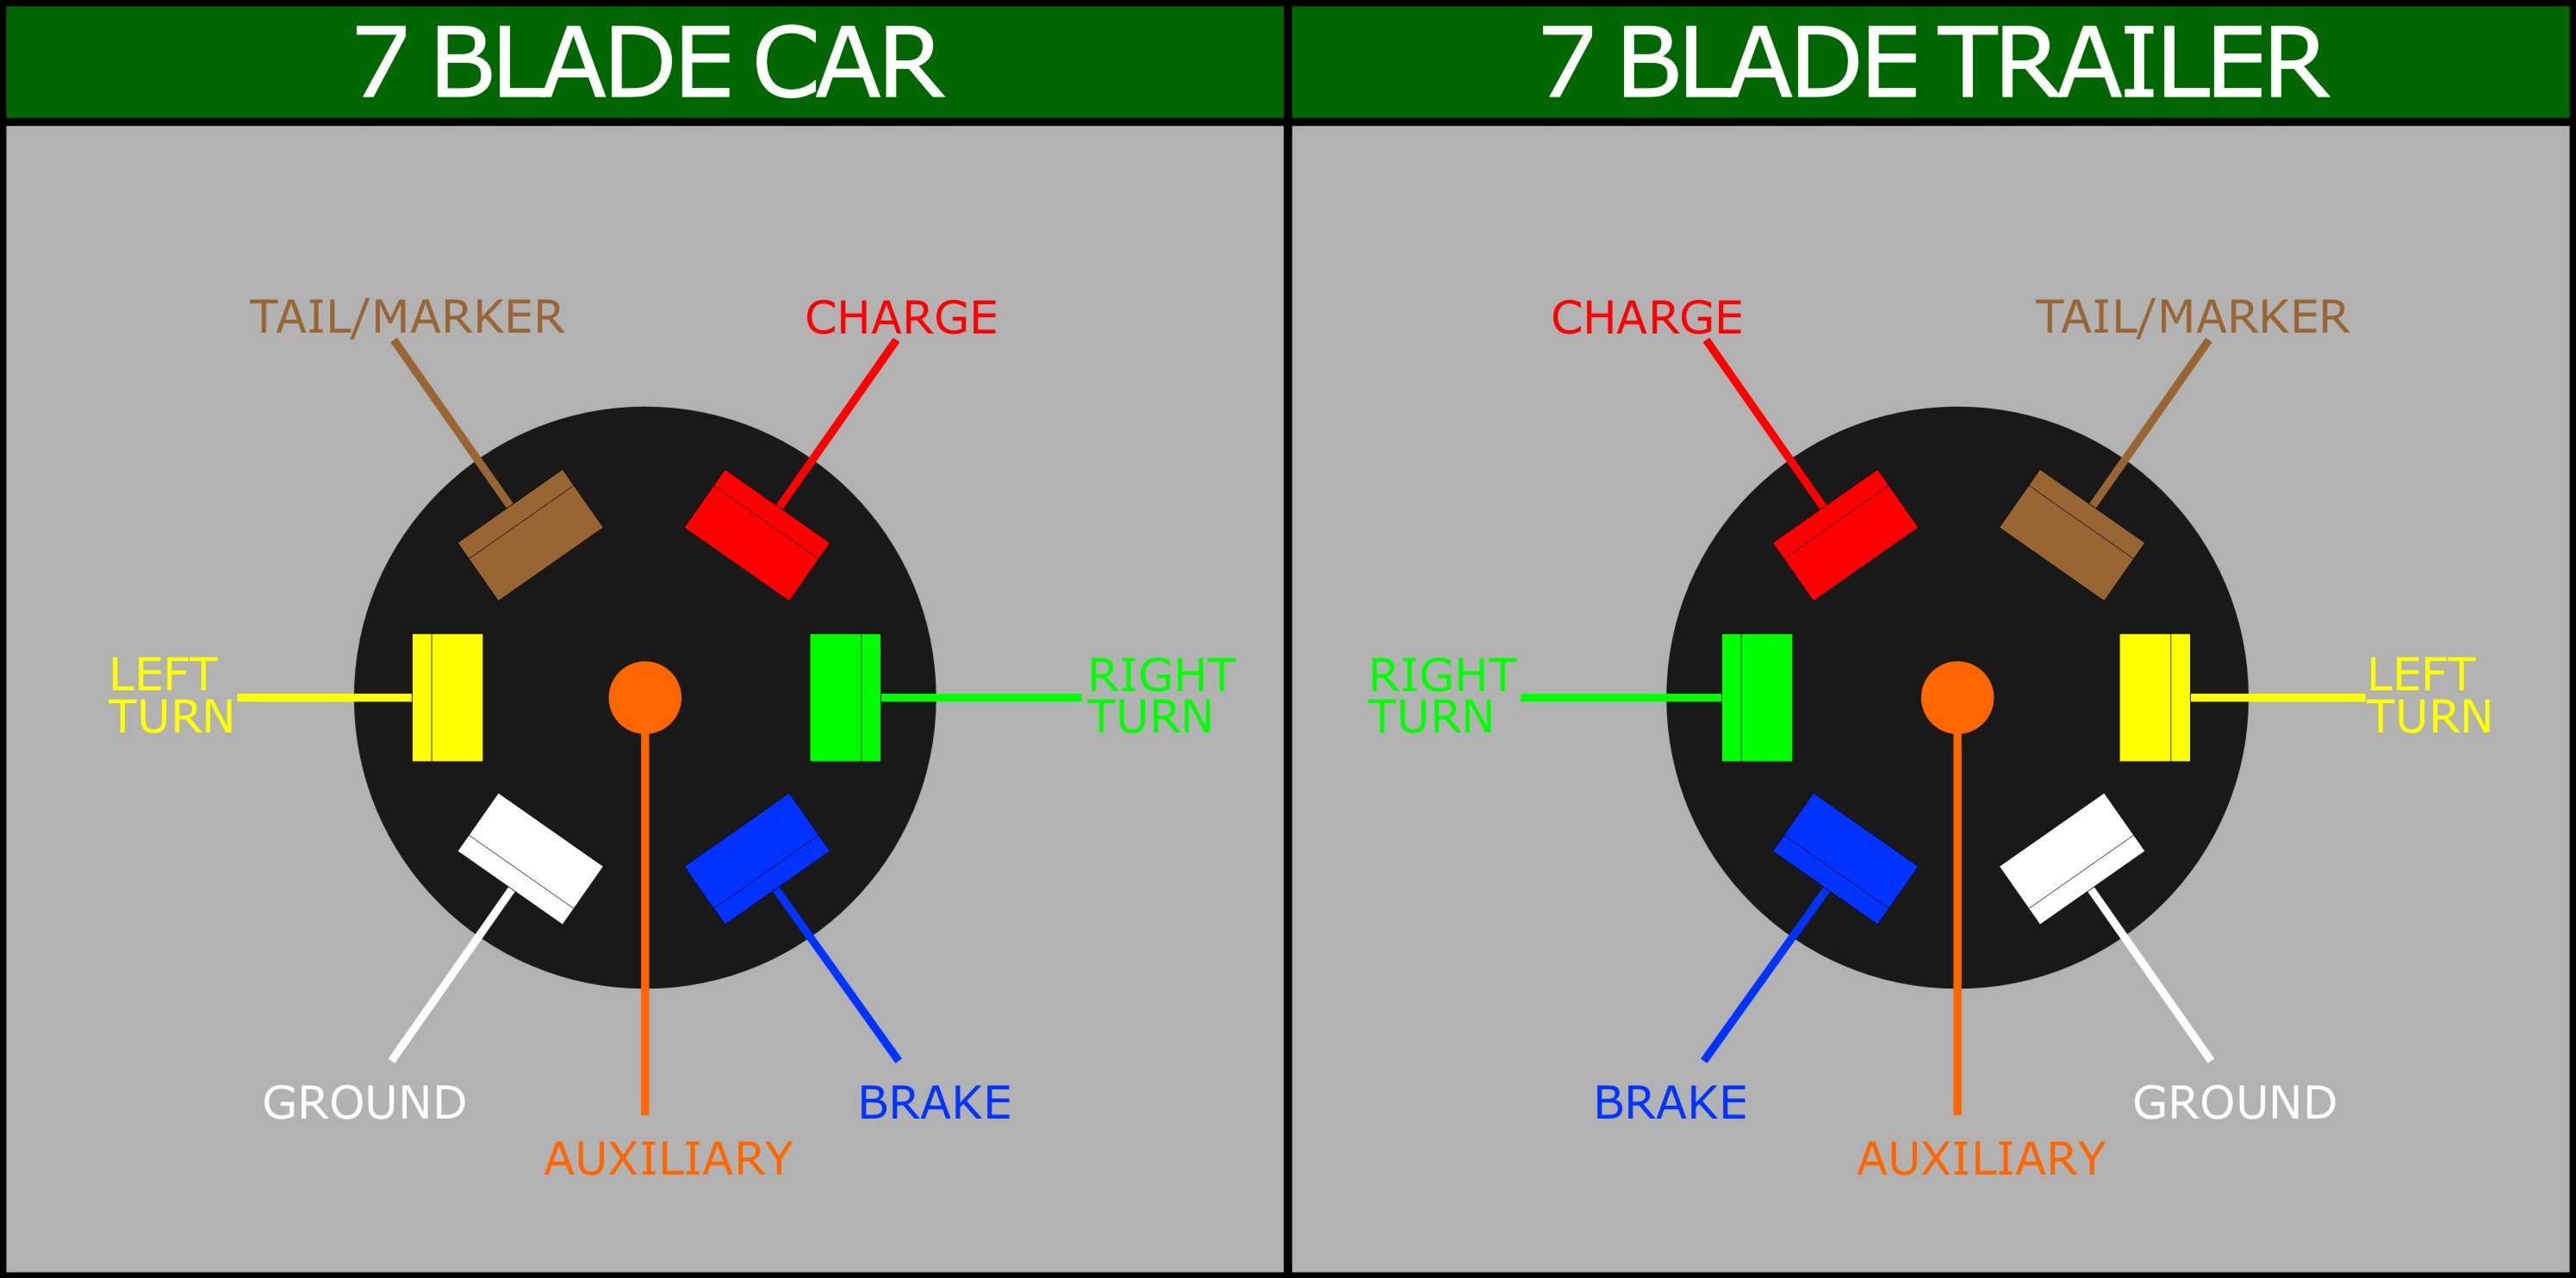 Wiring for 7 Blade Plug wiring a 7 blade trailer harness or plug 7 blade trailer plug wiring diagram at gsmportal.co